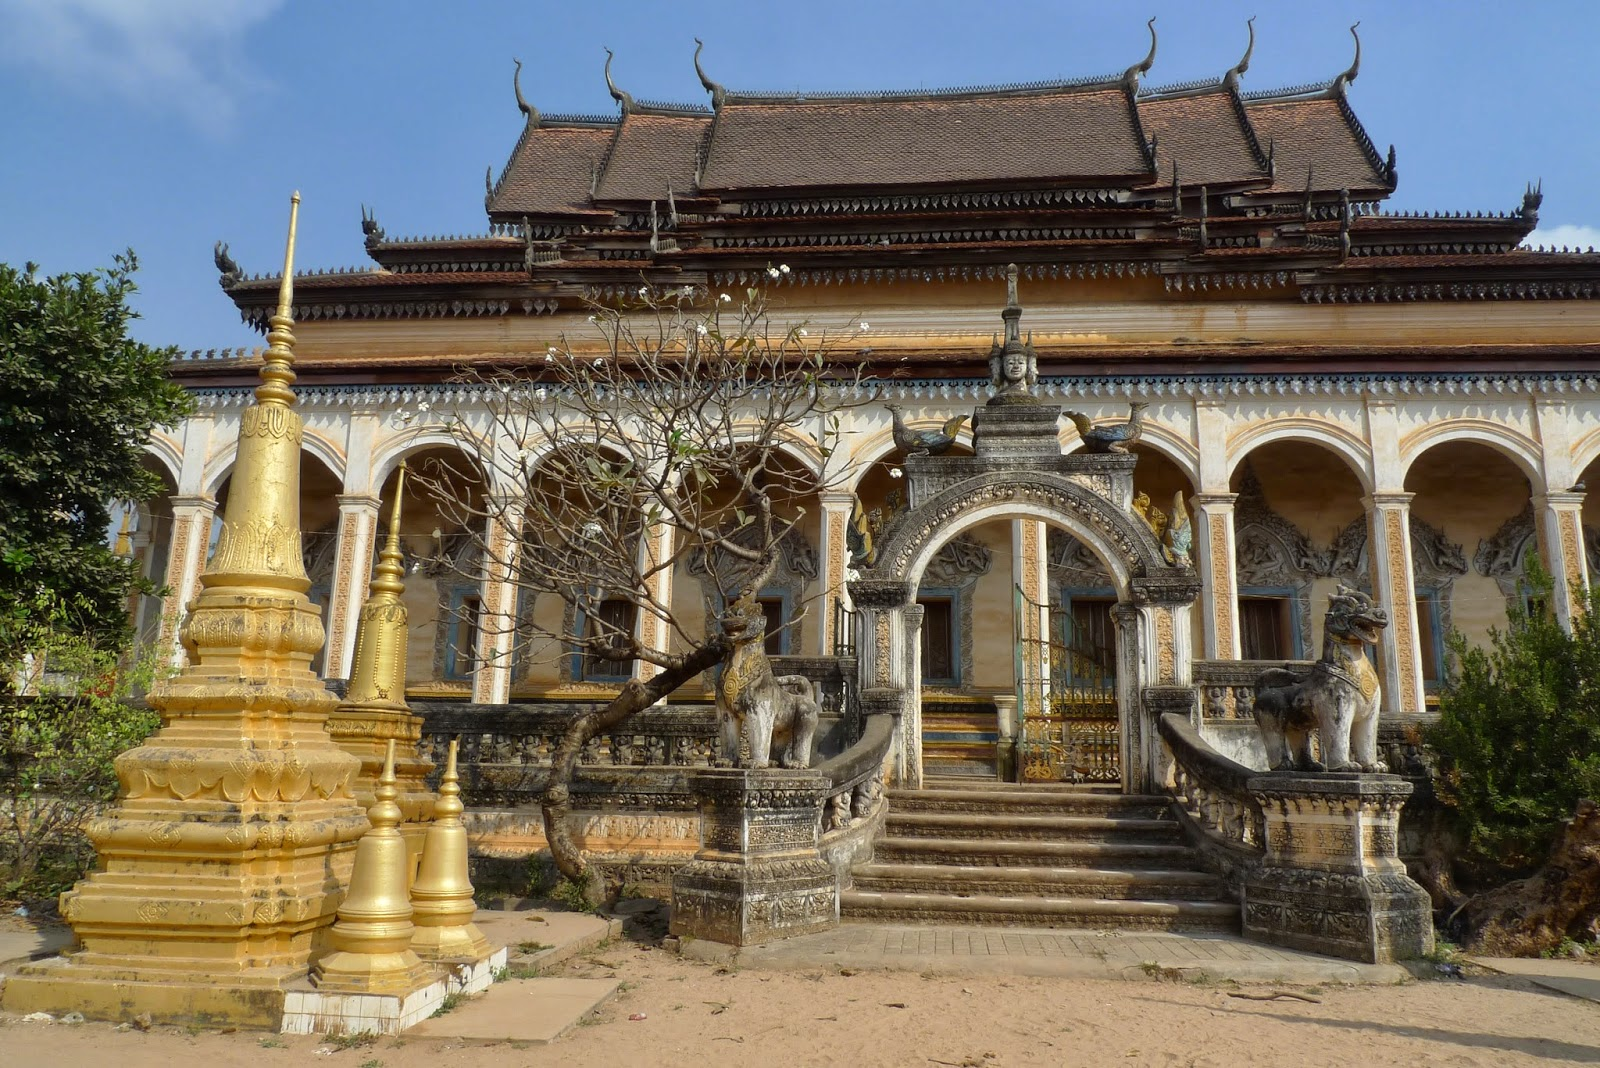 The peace of Wat Bo pagoda